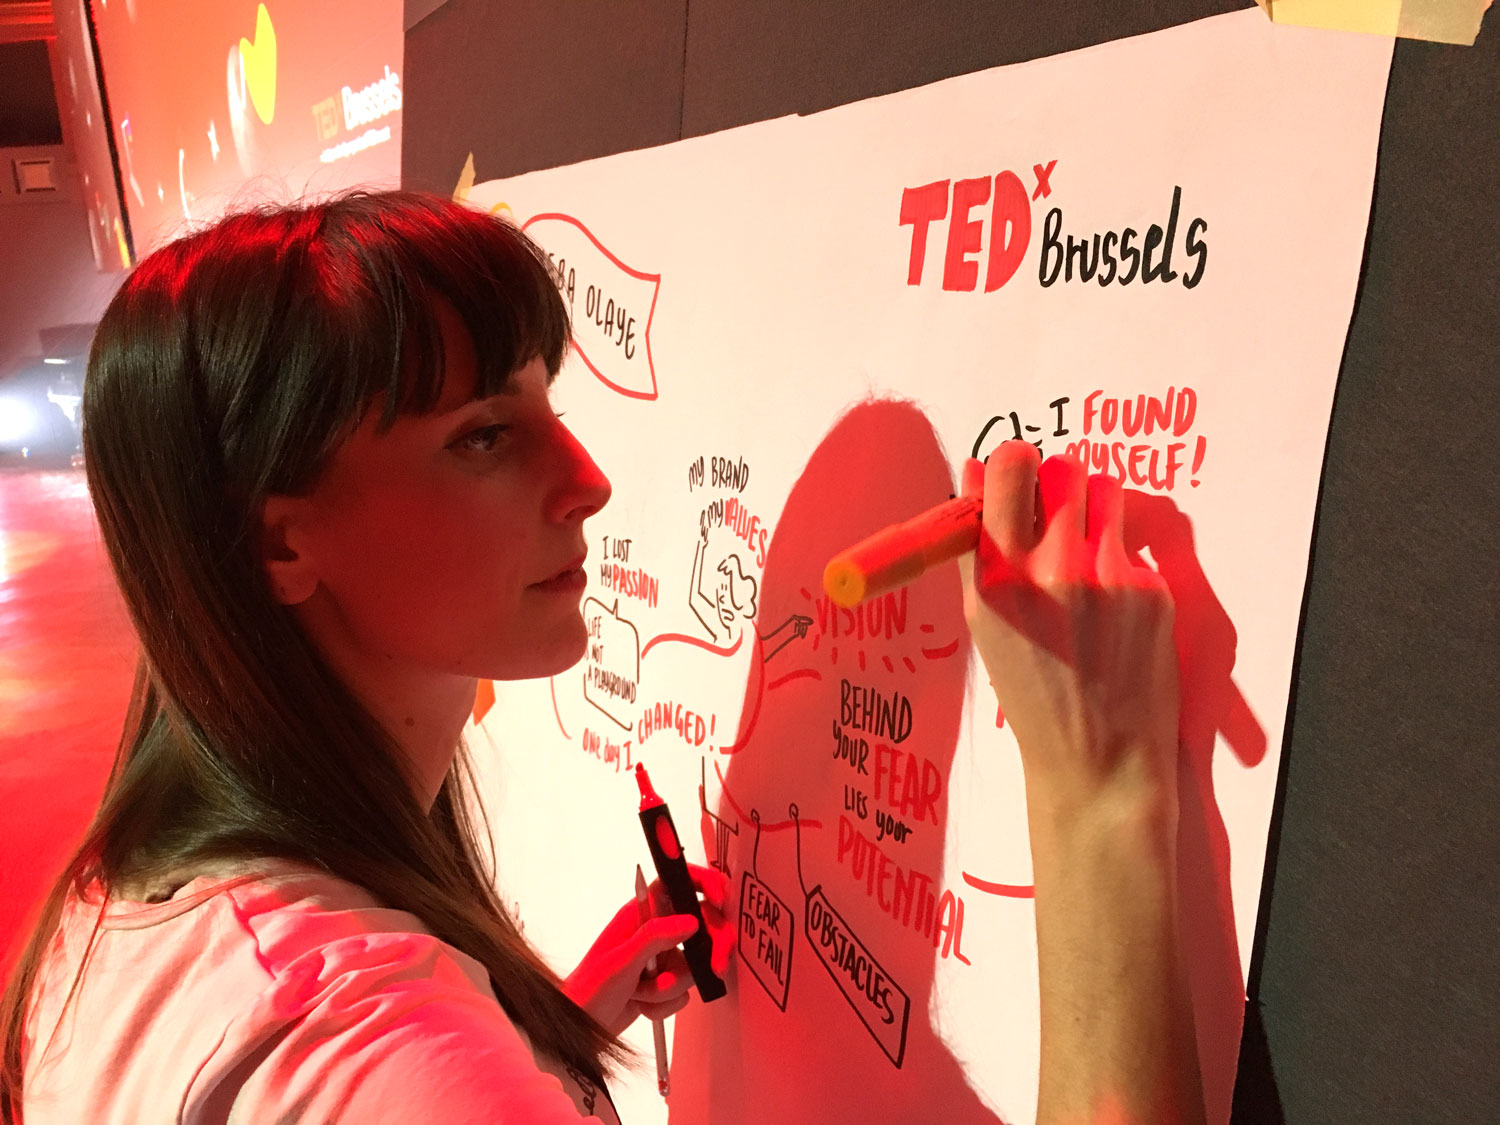 20170306-TEDxBrussels-event-stage-norma-web.jpg